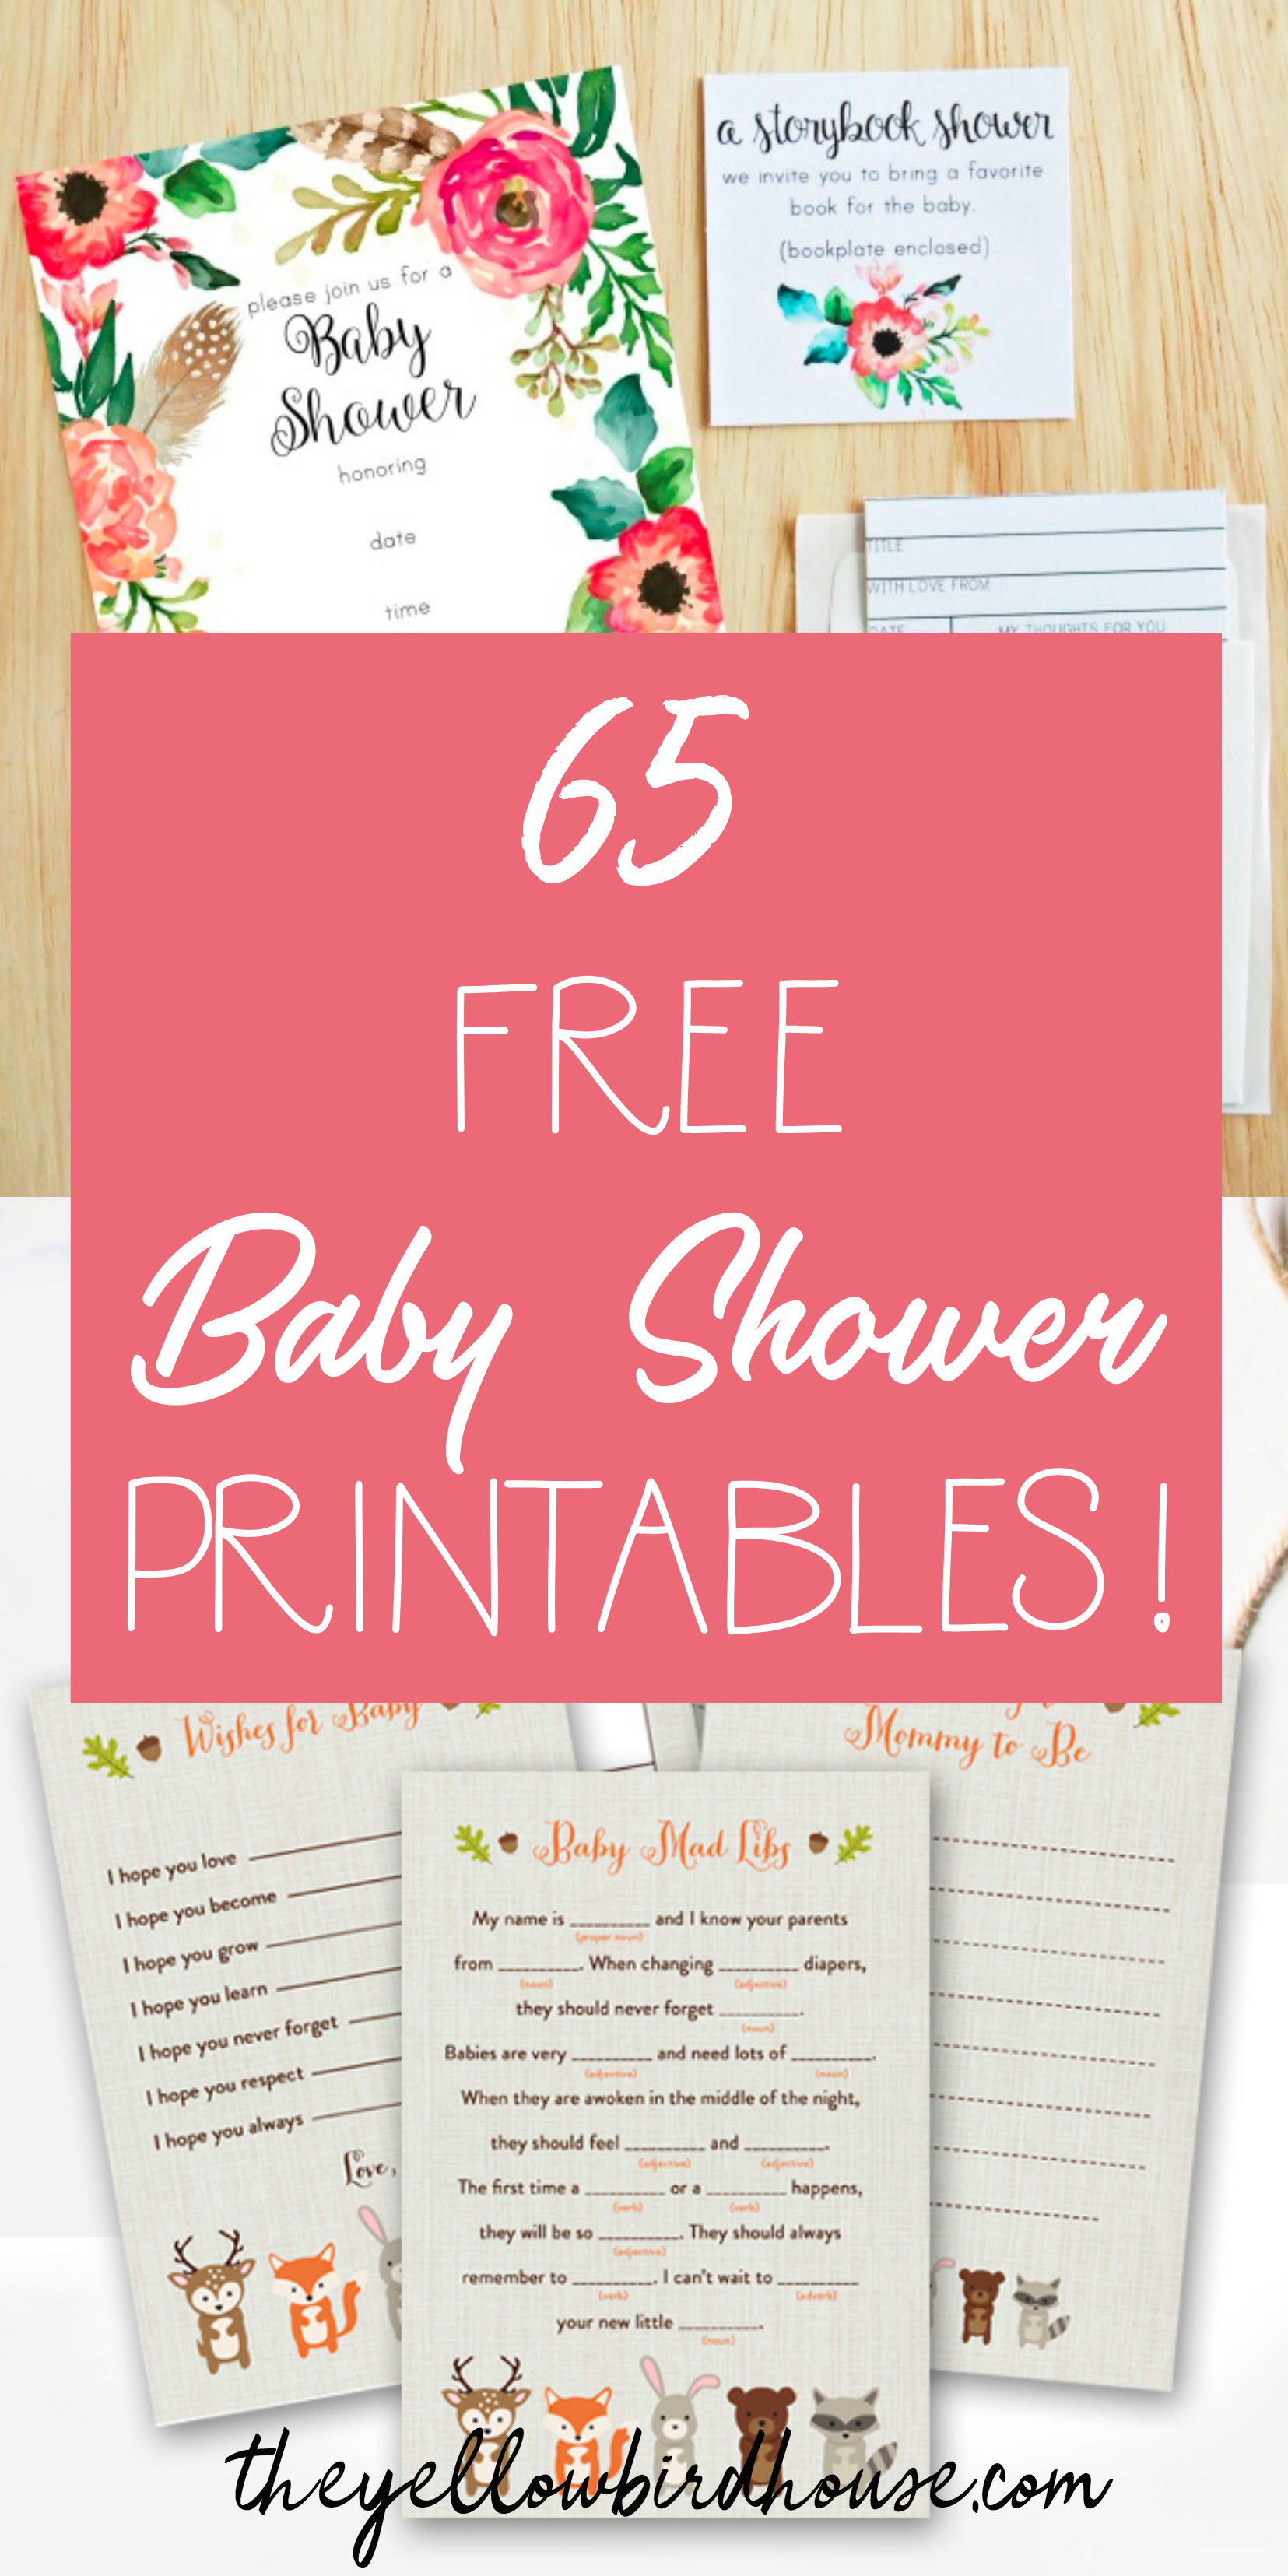 65 Free Baby Shower Printables For An Adorable Party - Free Printable Baby Shower Decorations For A Boy